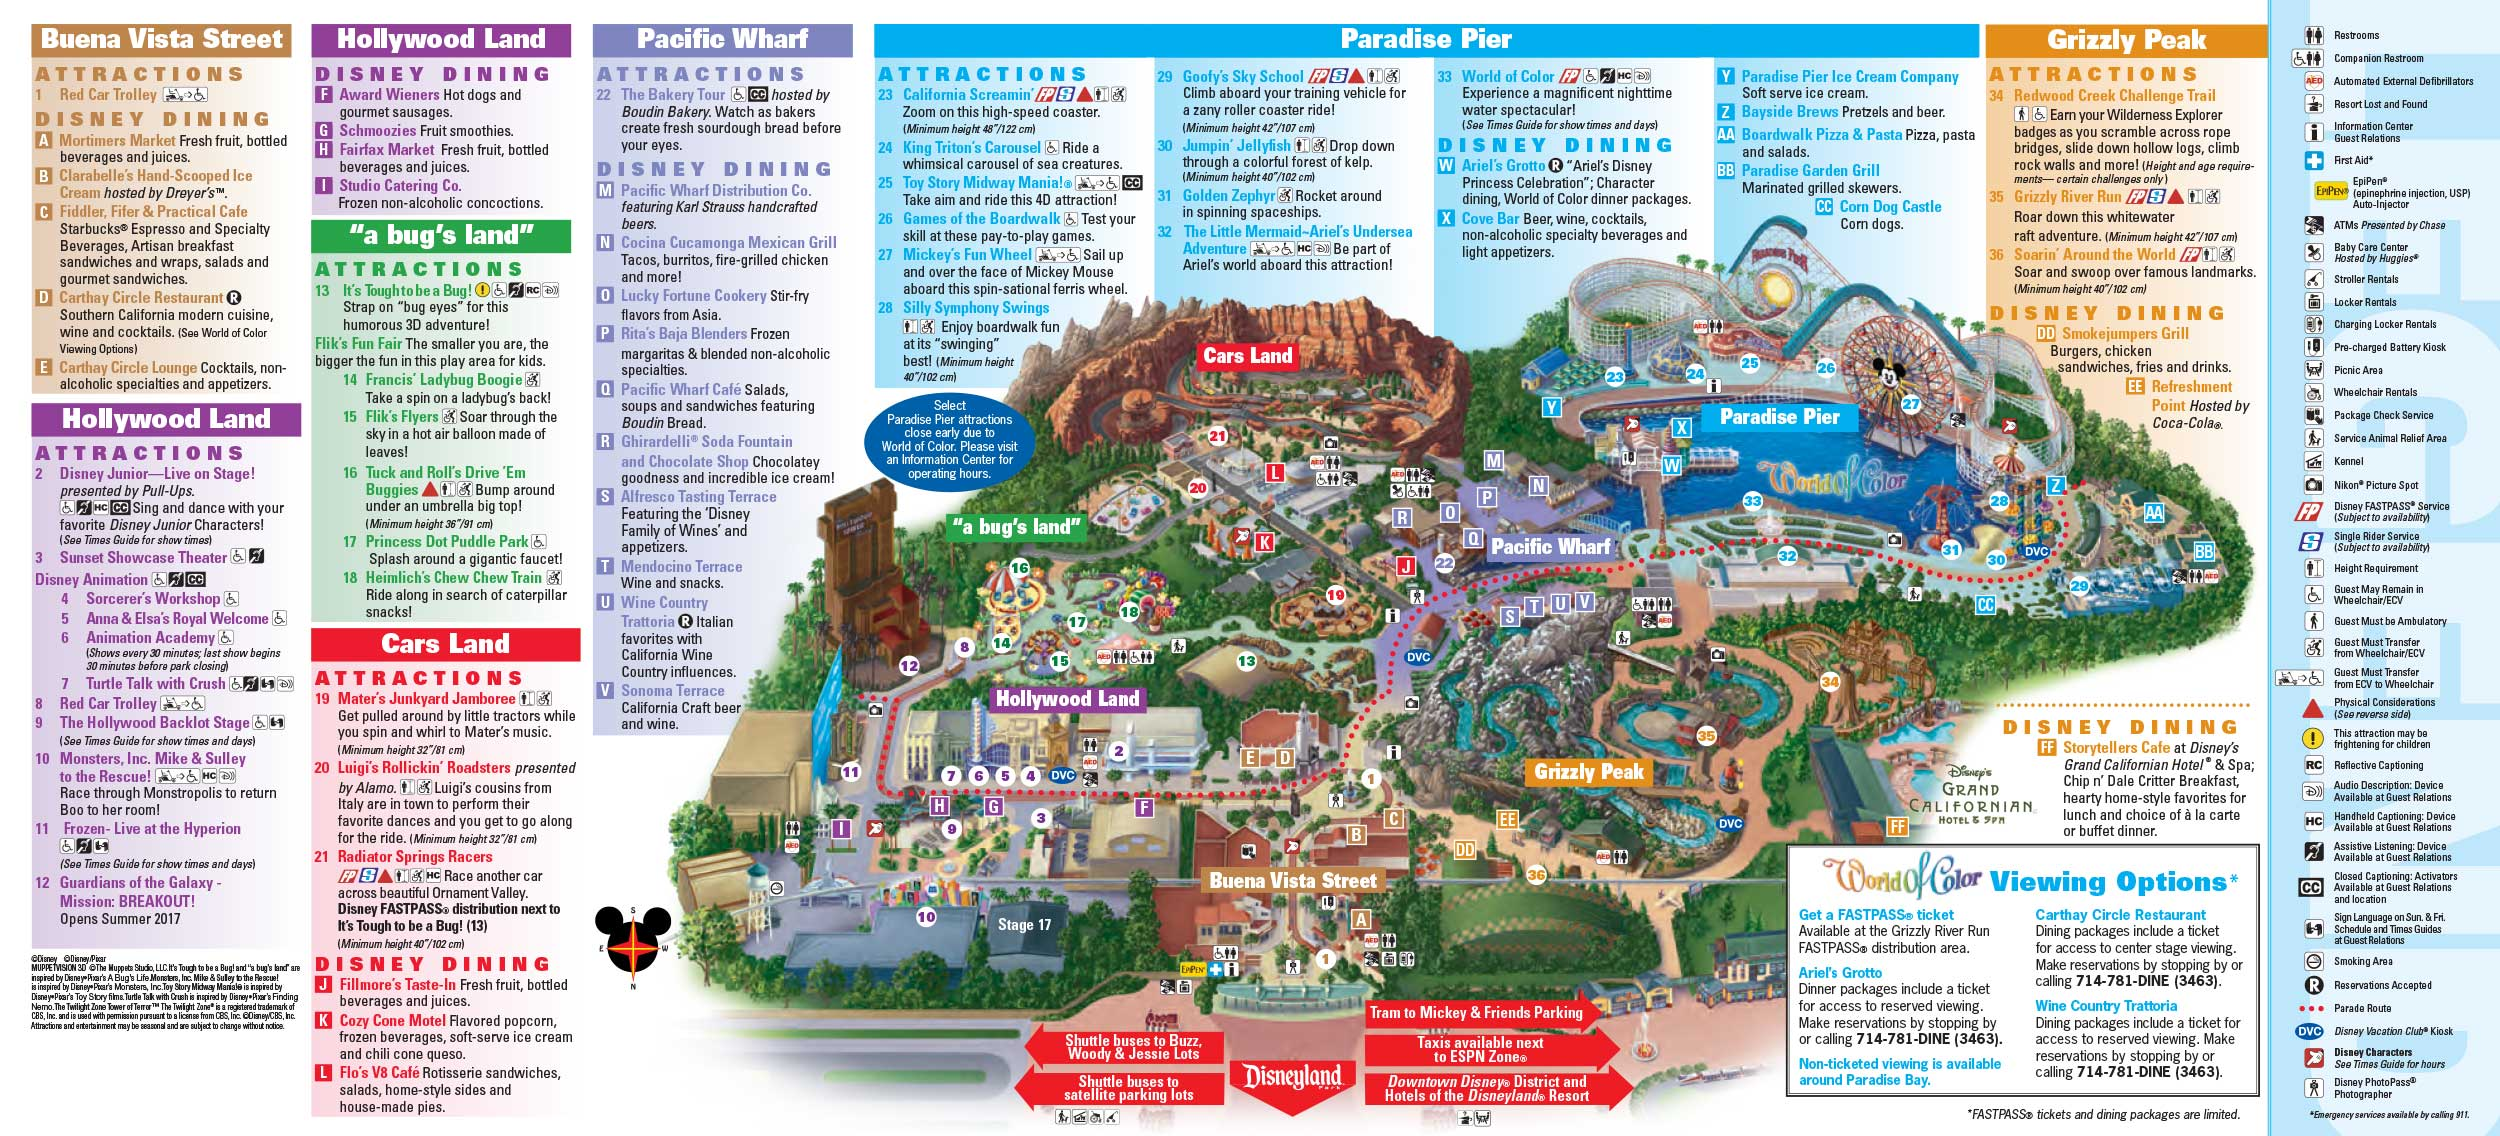 Disneyland Park Map in California Map of Disneyland